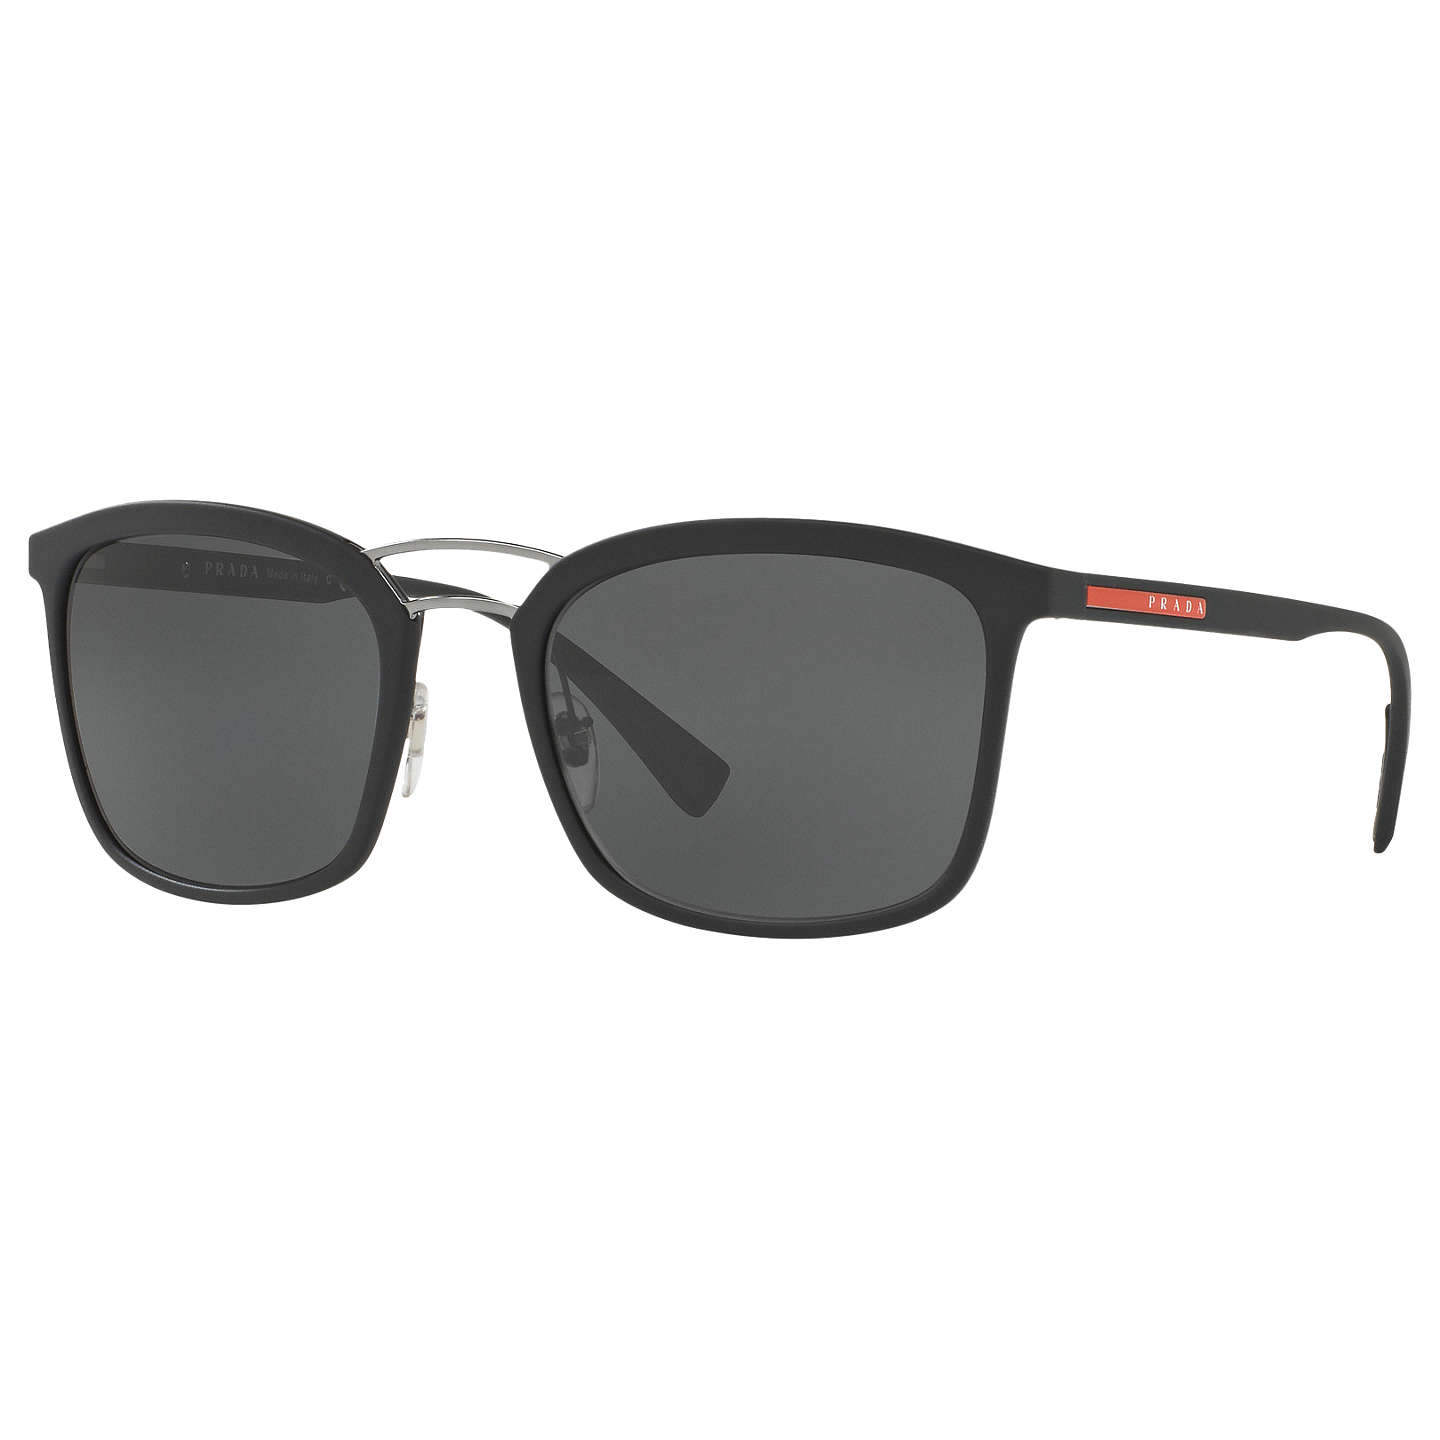 Prada Ps 03 Ss Square Sunglasses, Matte Black by Prada